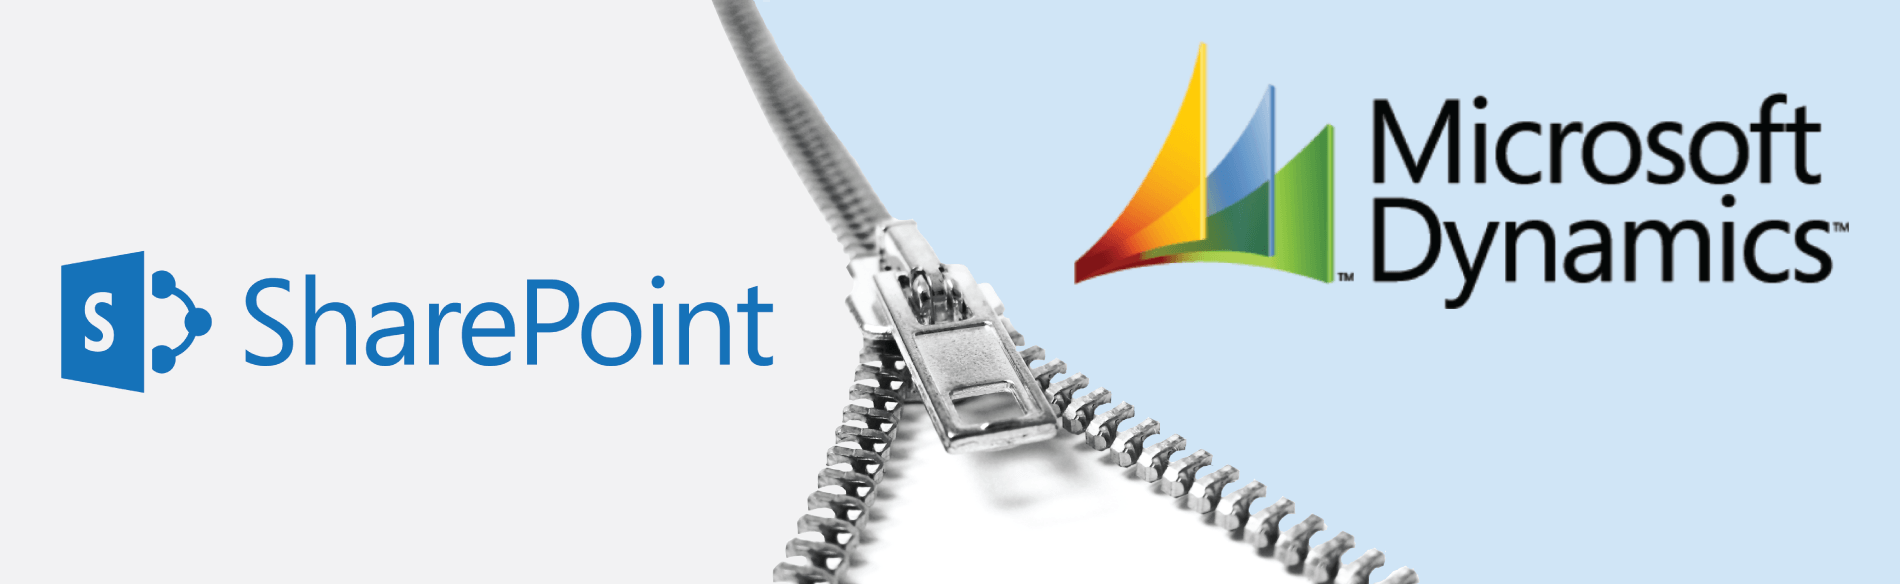 SharePoint Software Requirements | DynamicPoint